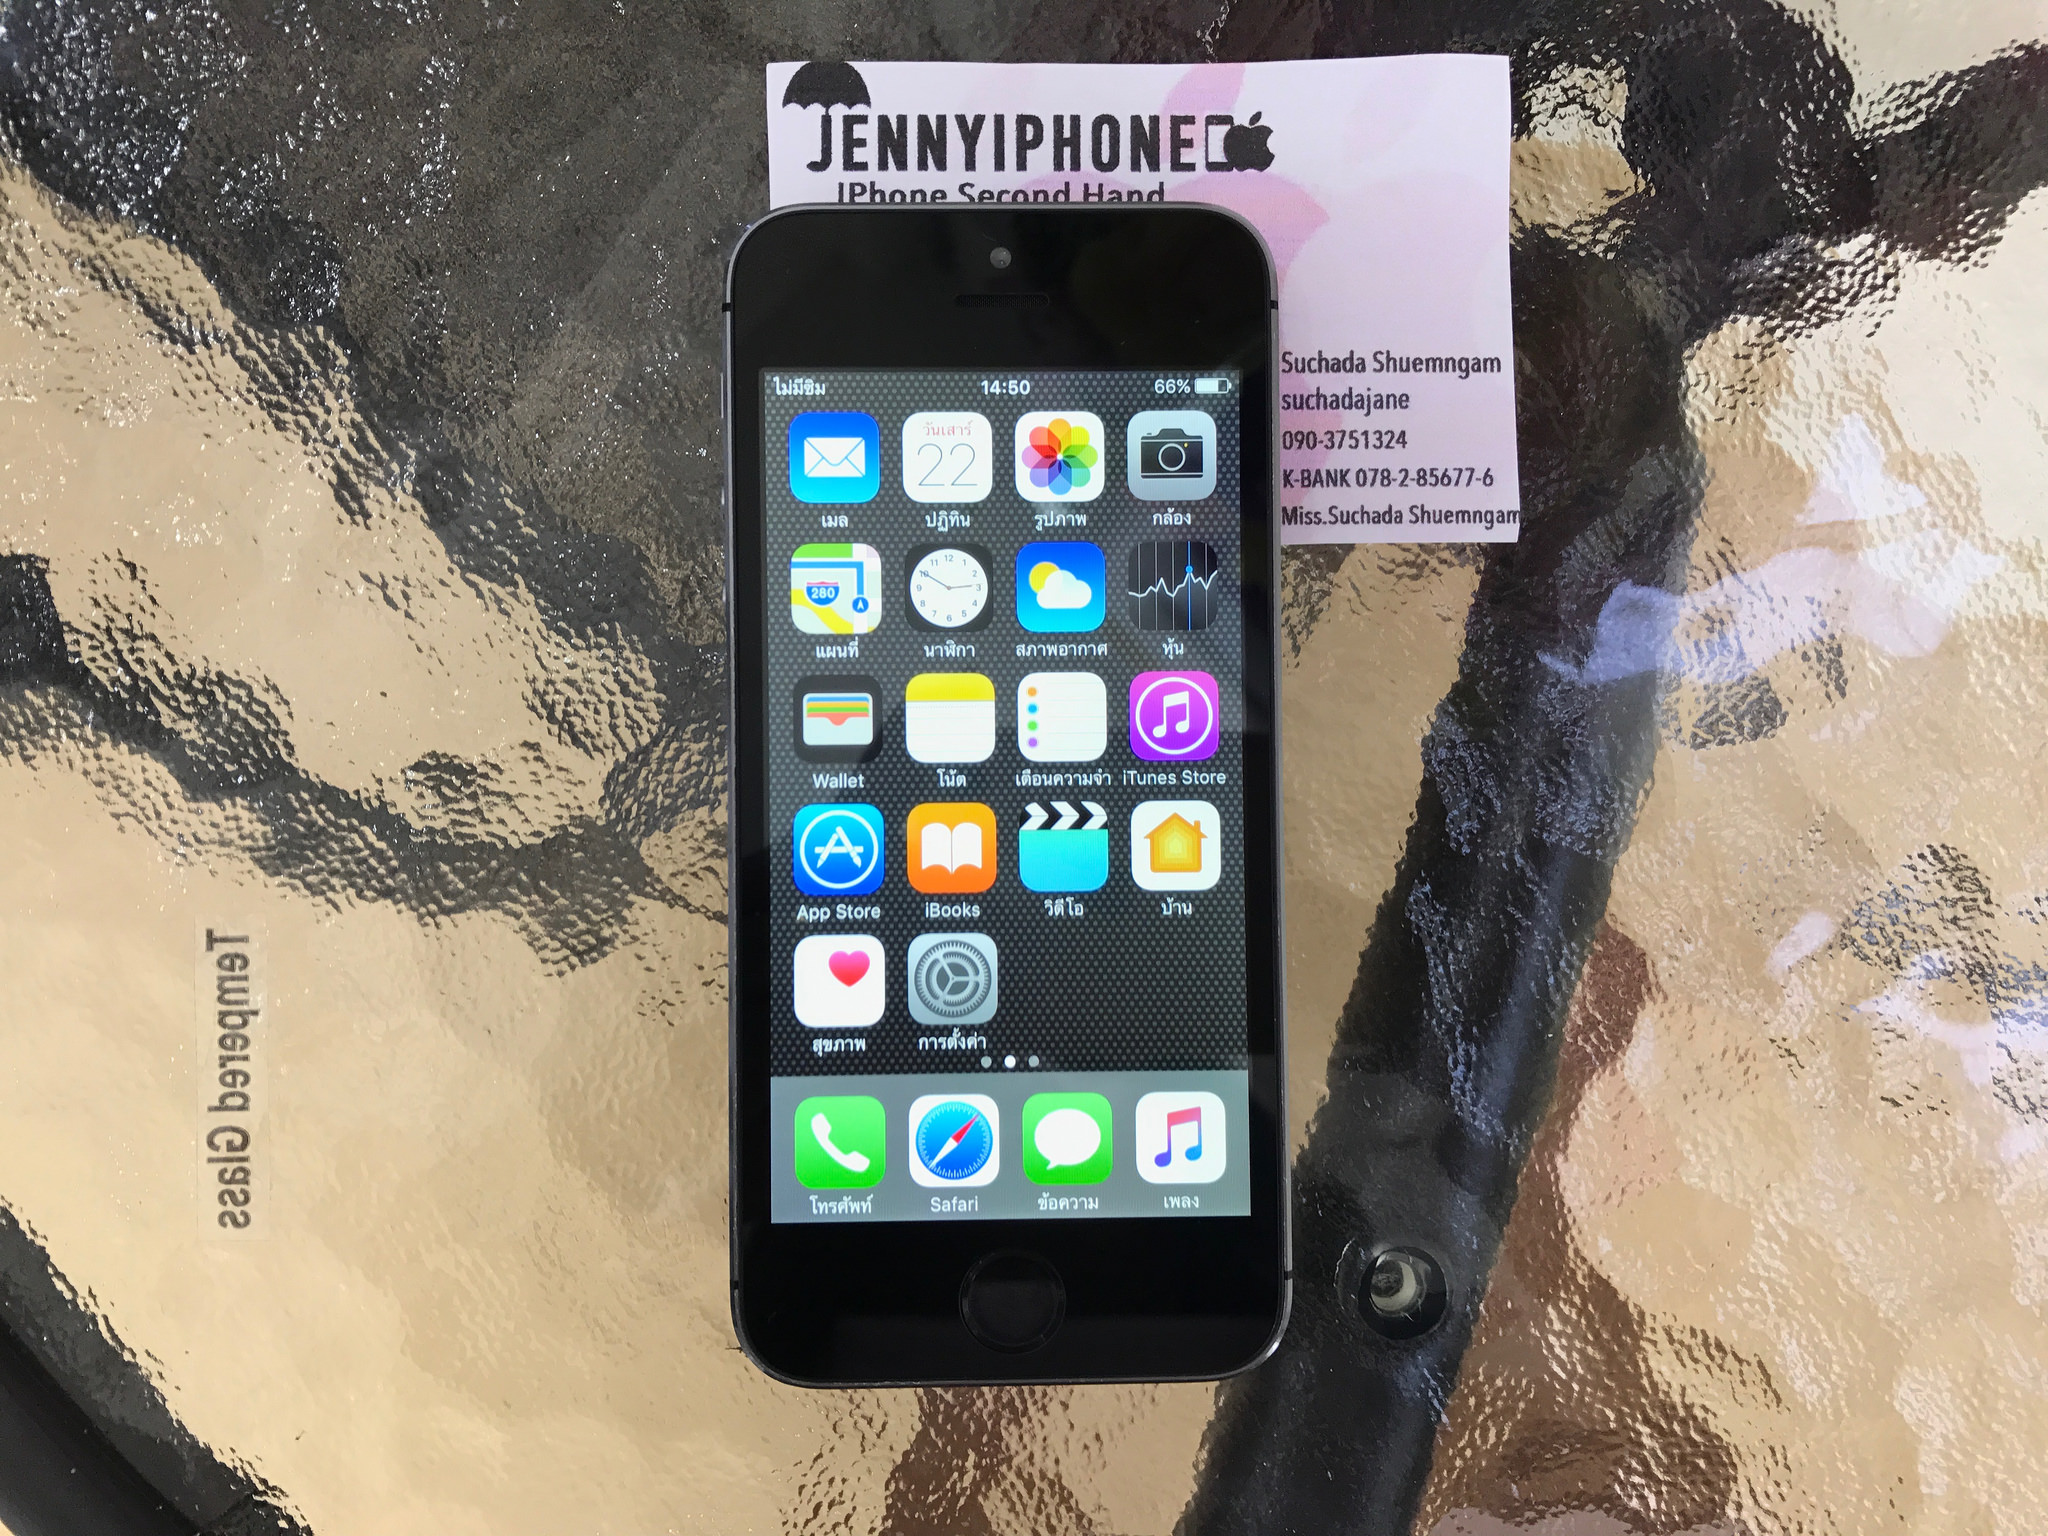 iPhone5s 16 Gb Black สีดำ